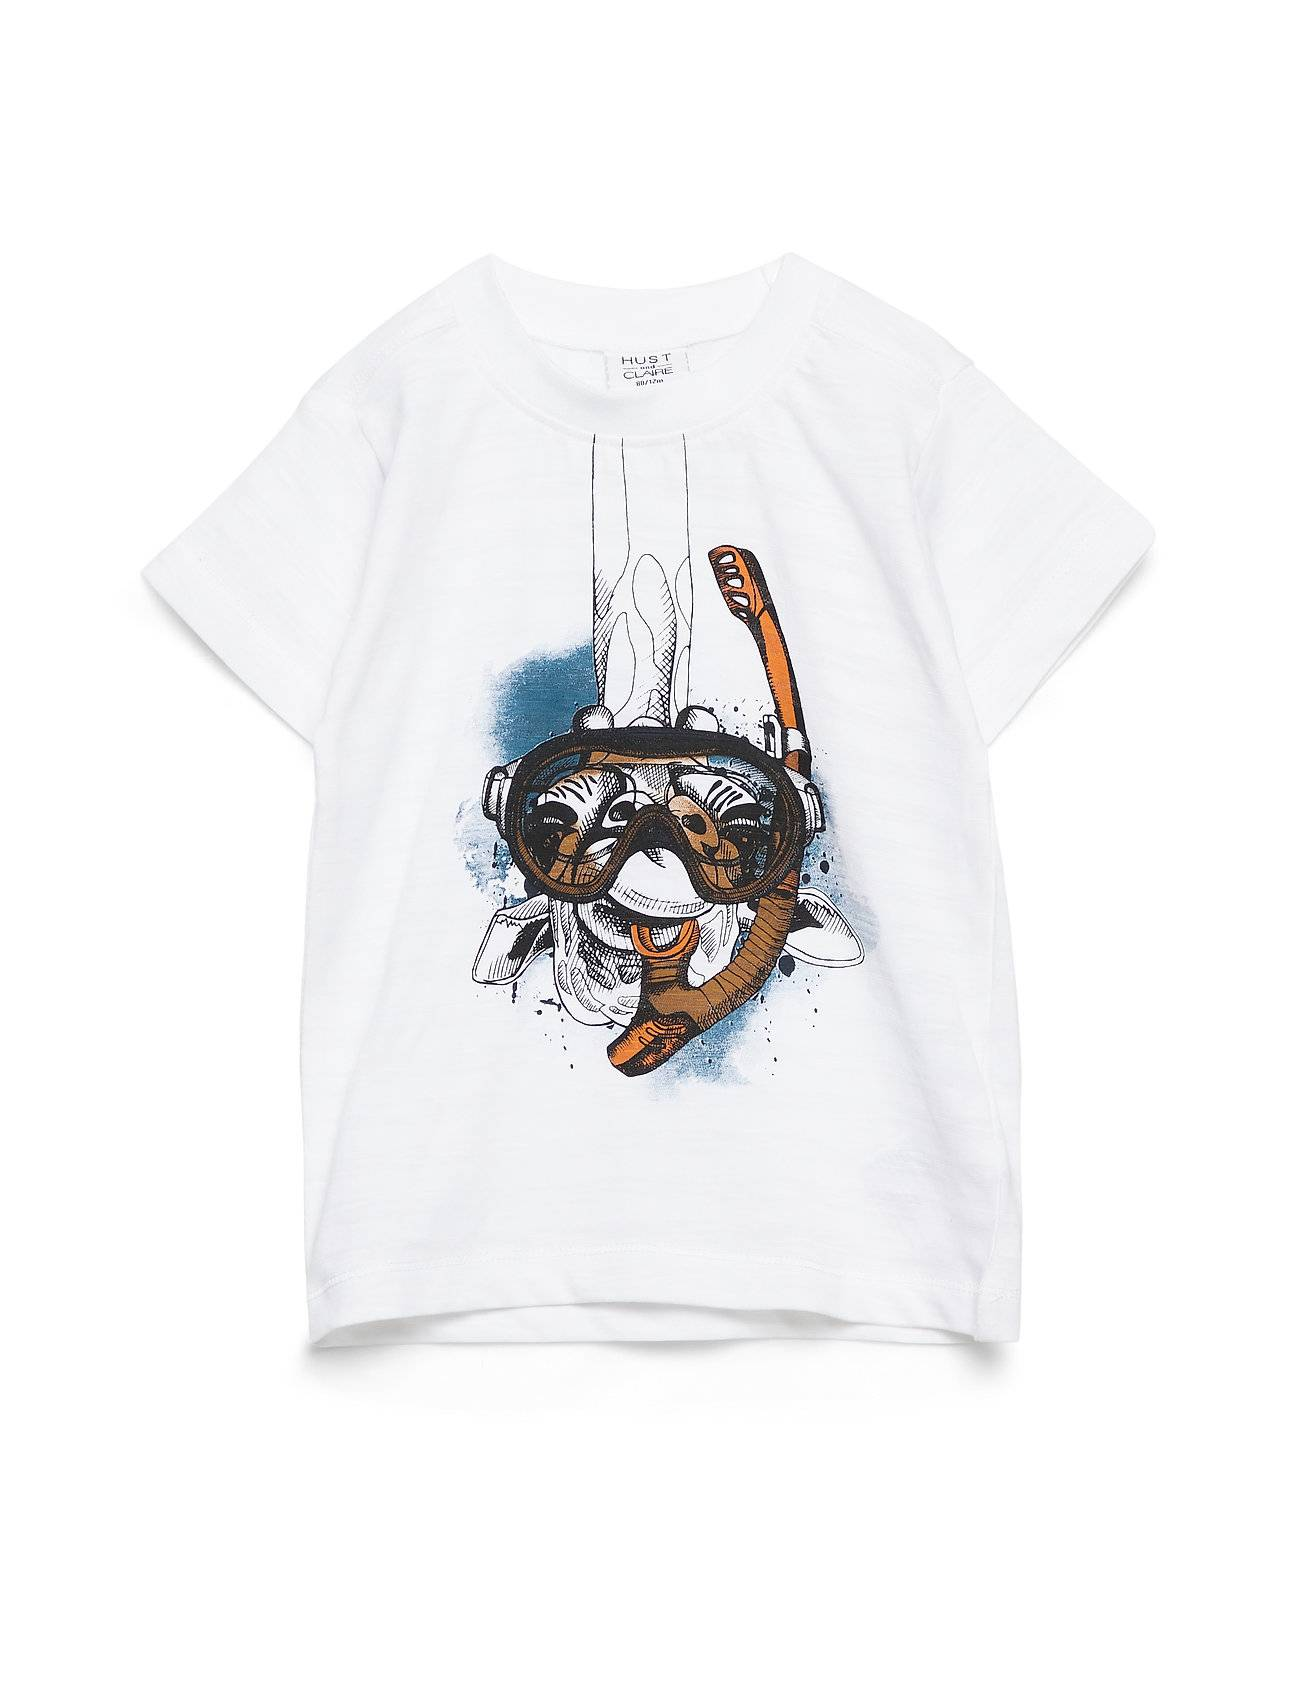 Hust & Claire Arthur - T-Shirt S/S T-shirts Short-sleeved Valkoinen Hust & Claire